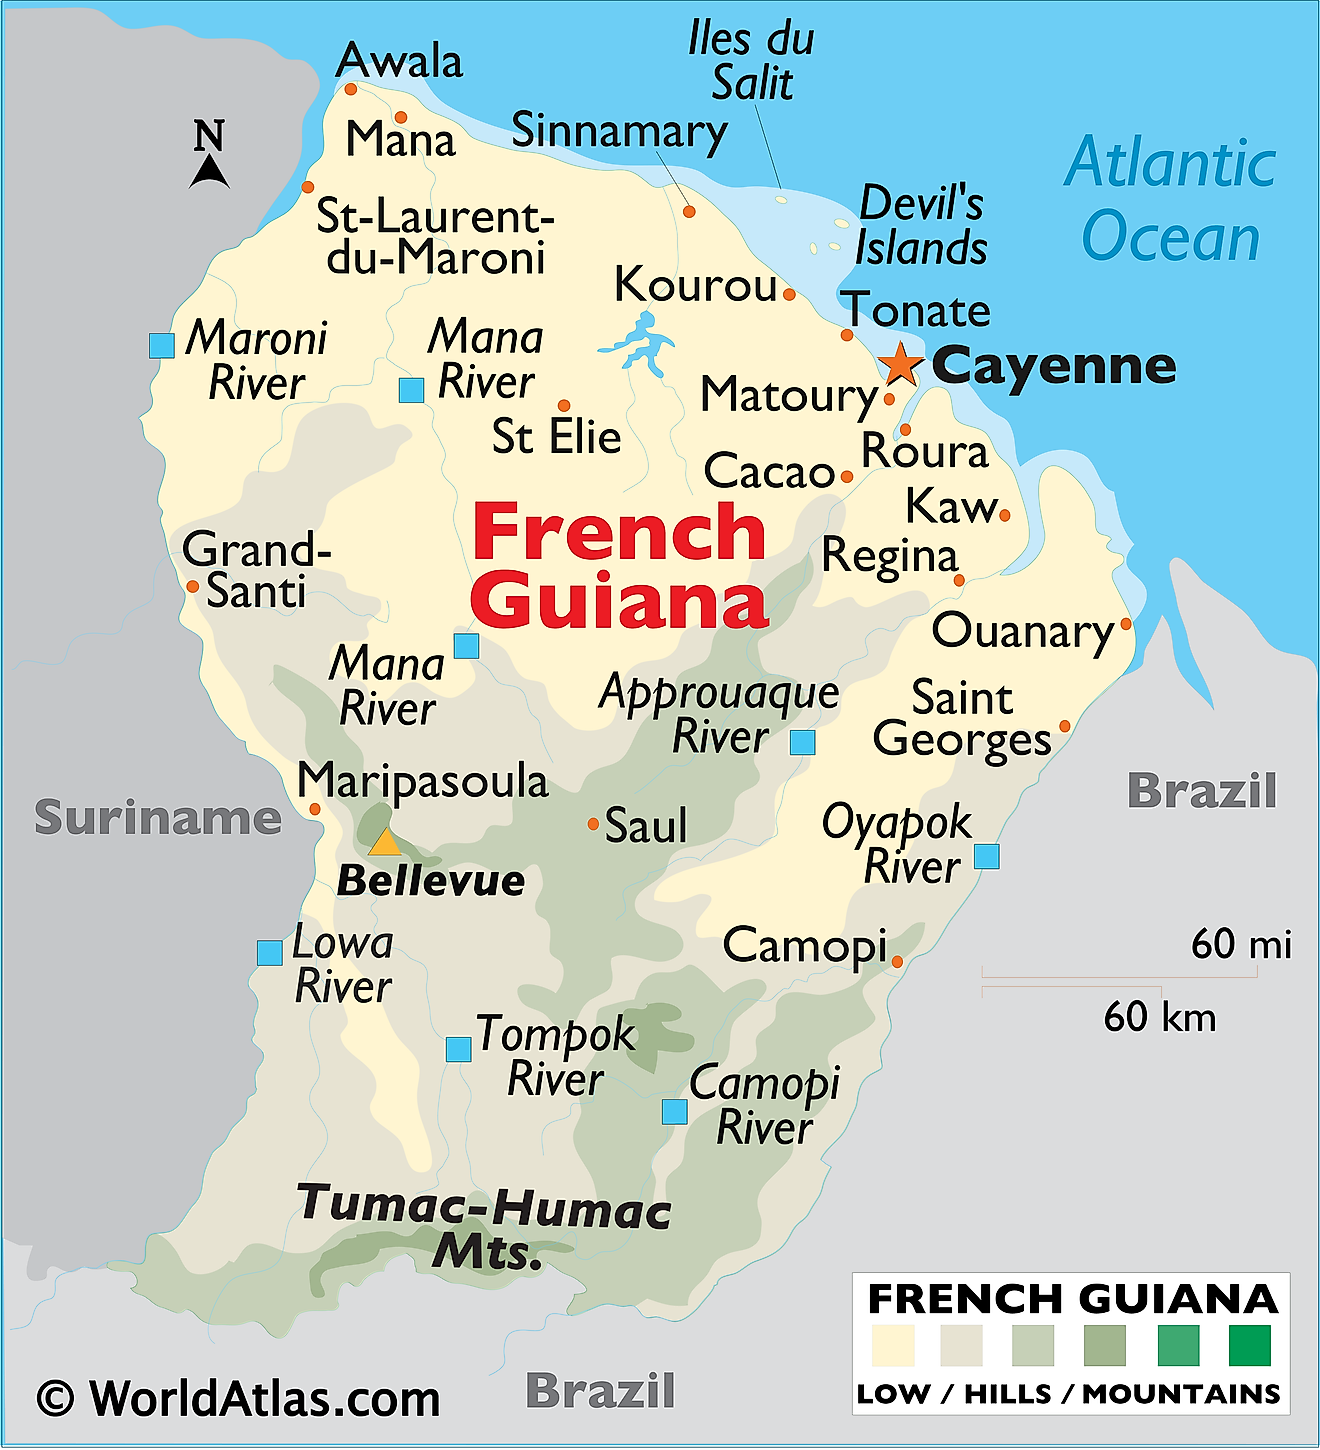 Physical map of French Guiana showing terrain, Tumac-Humac mountains, major rivers, important settlements, islands, etc.